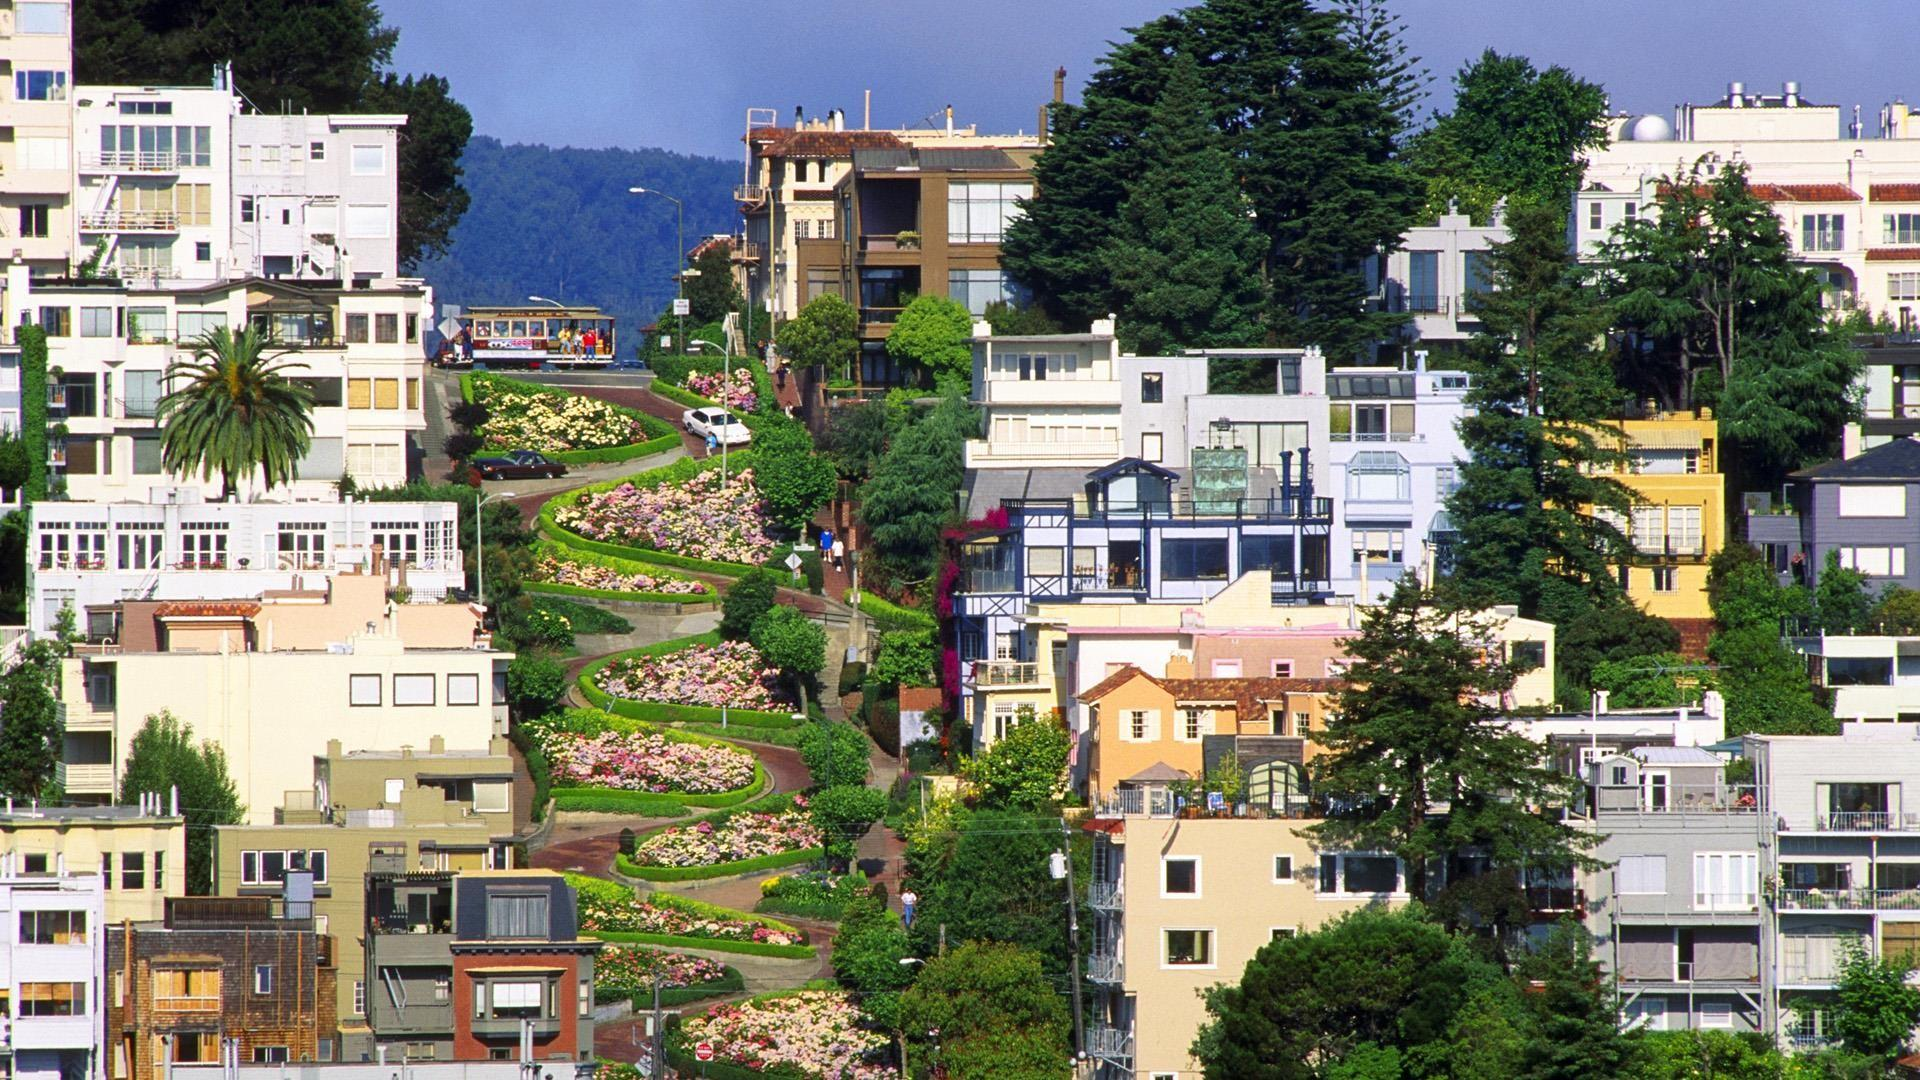 Lombard Street,San Francisco,California[1920x1080] : wallpapers